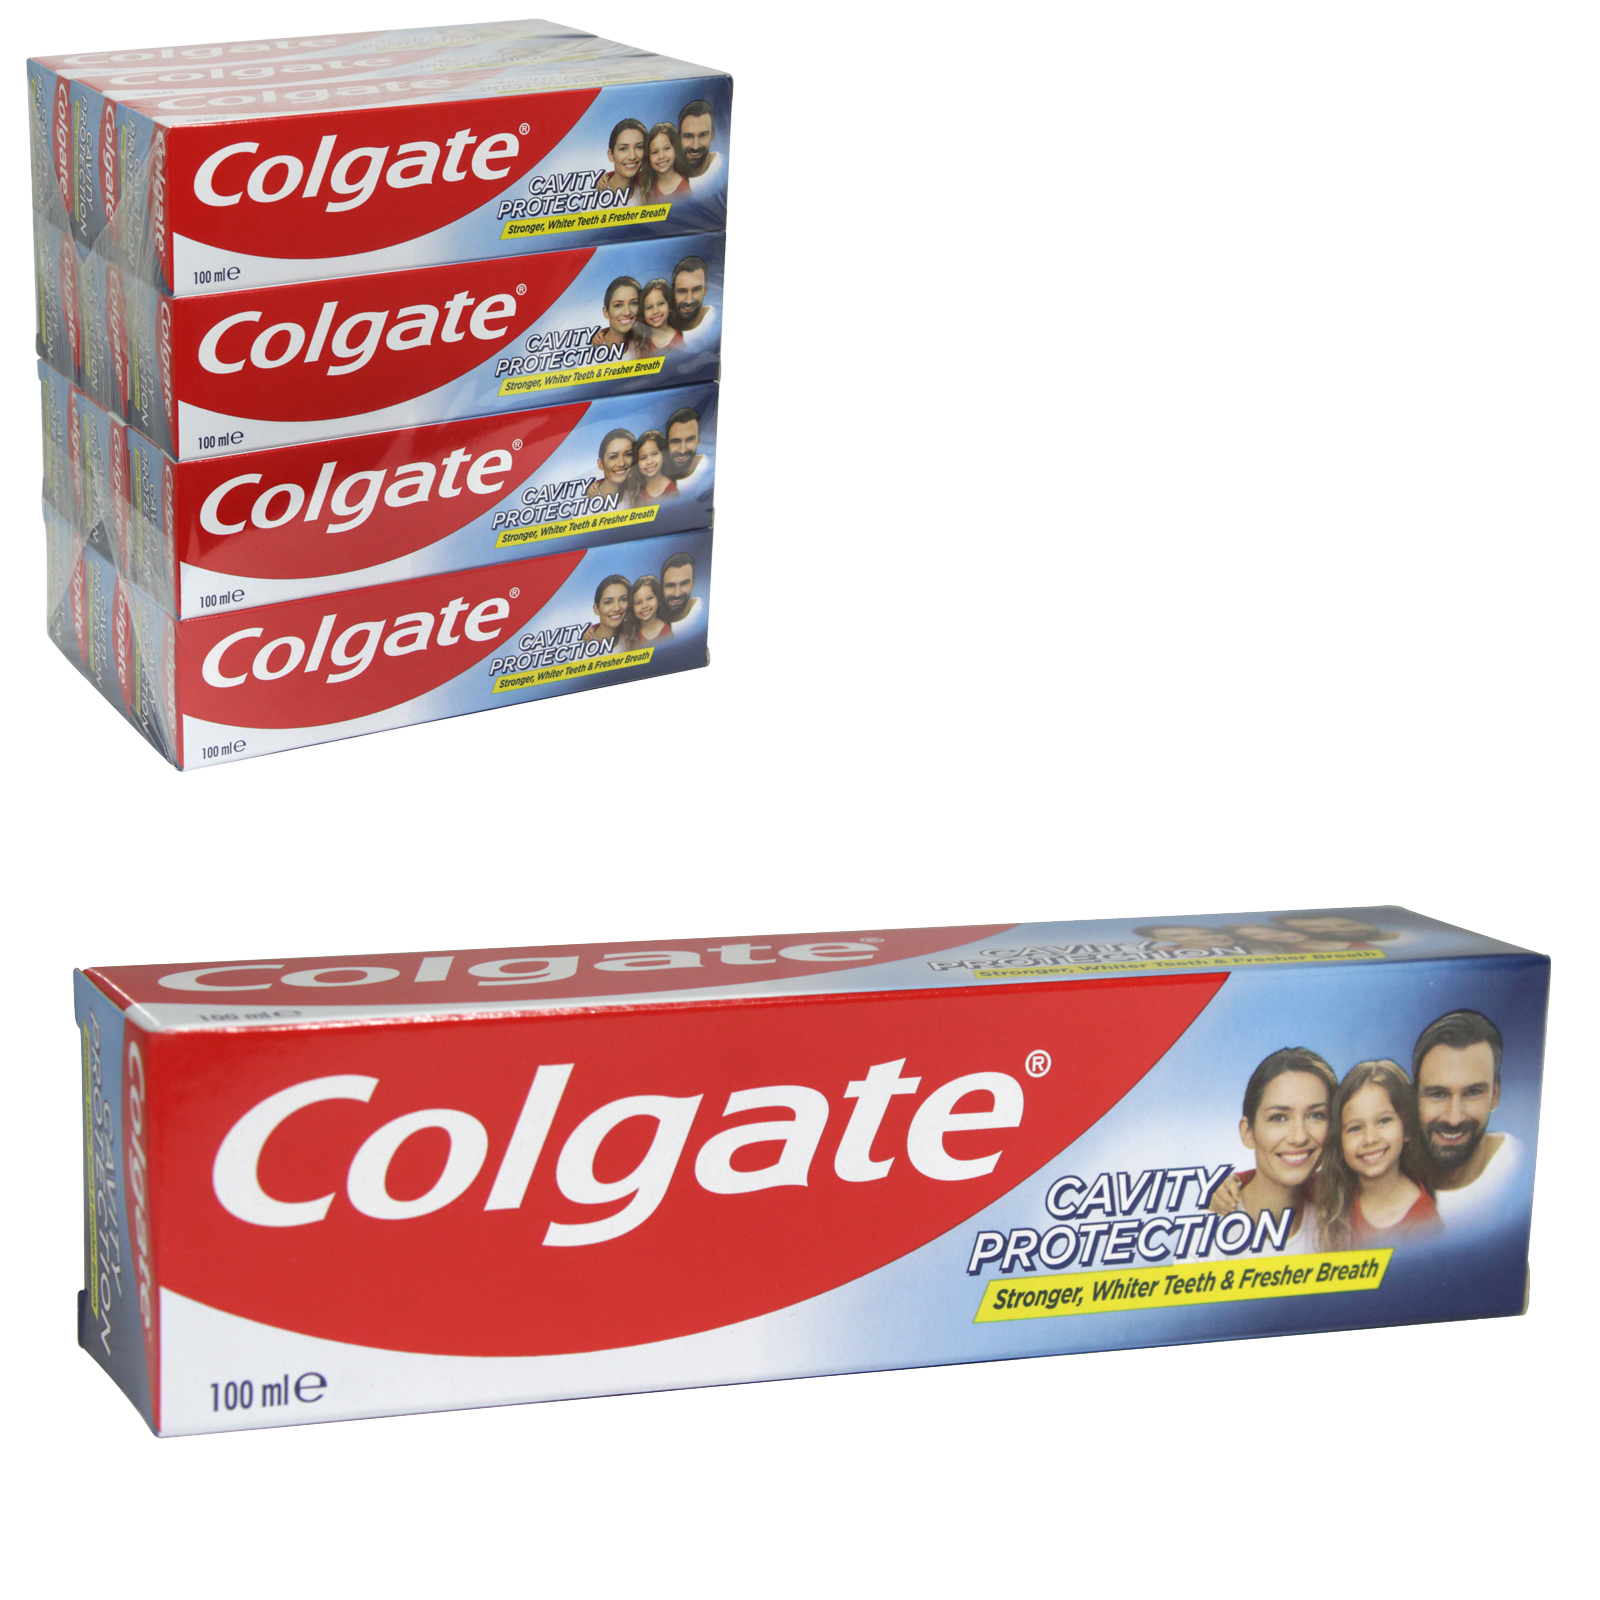 COLGATE TOOTHPASTE 100M CAVITY PROTECTION FRESH MINT X12